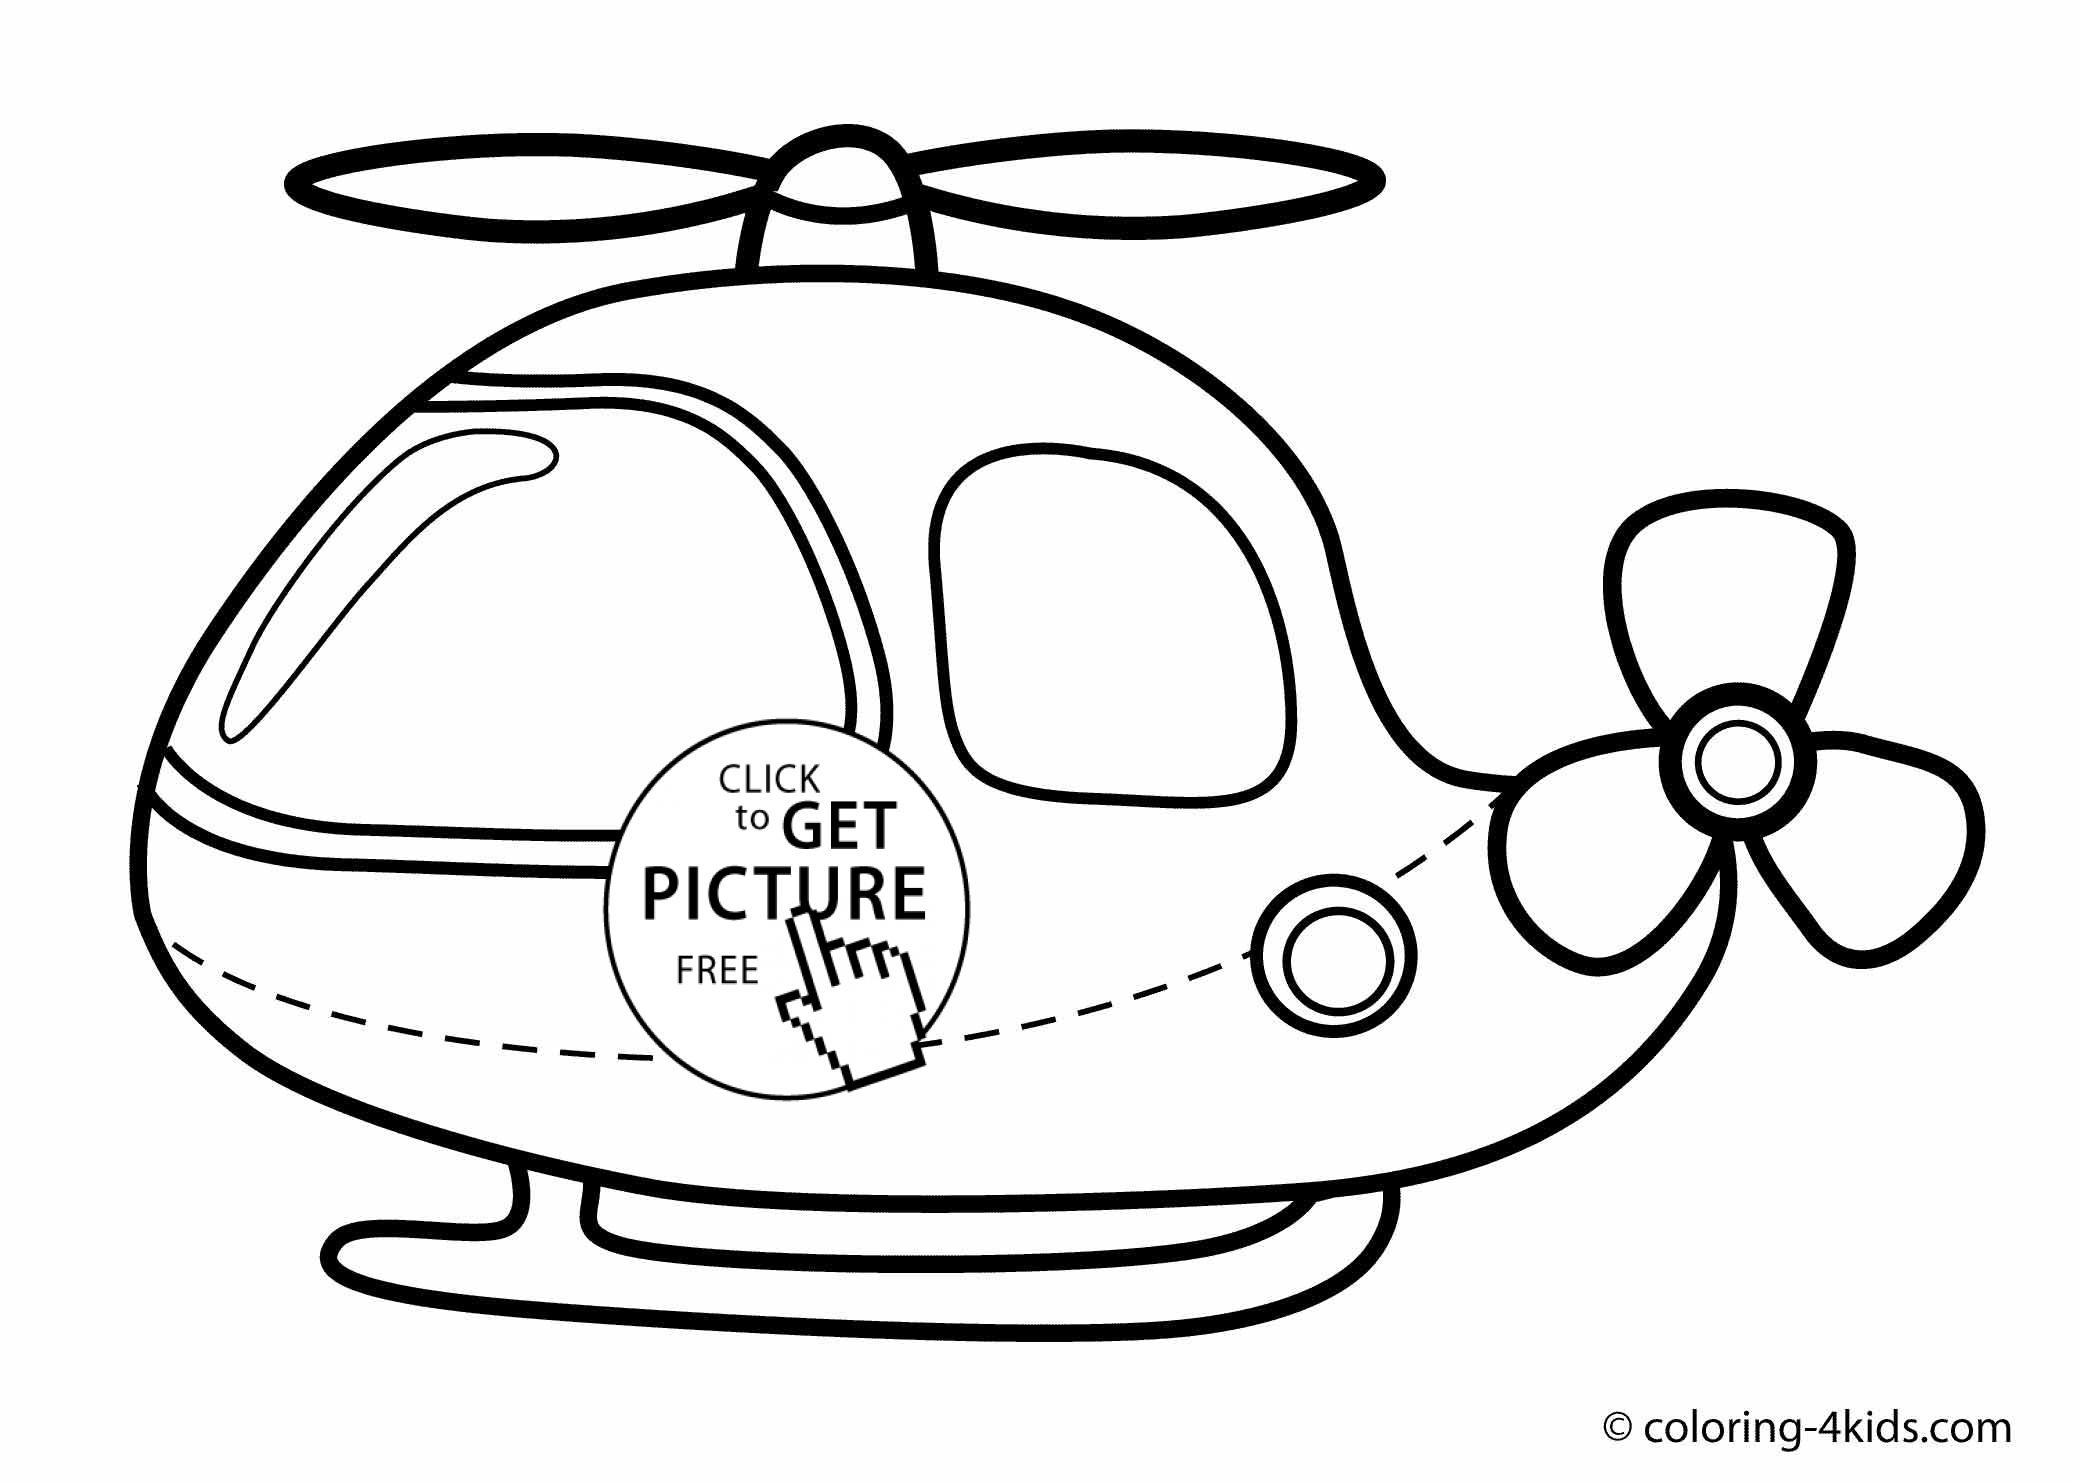 2079x1483 Helicopter Coloring Pages To Print Fresh Helicopter Coloring Pages